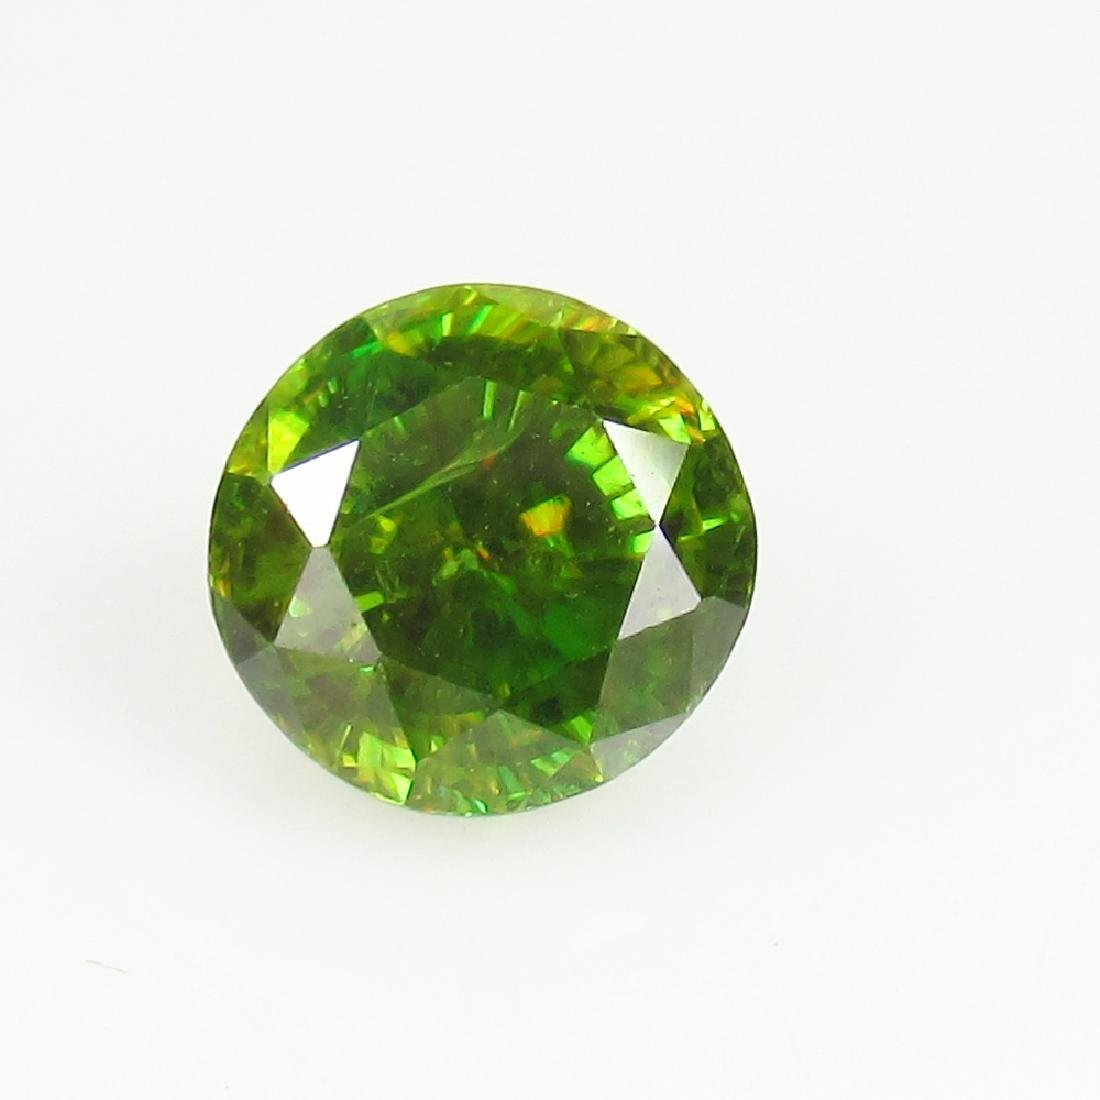 IGI Certified 2.01 Ct Genuine Yellowish Green Sphene